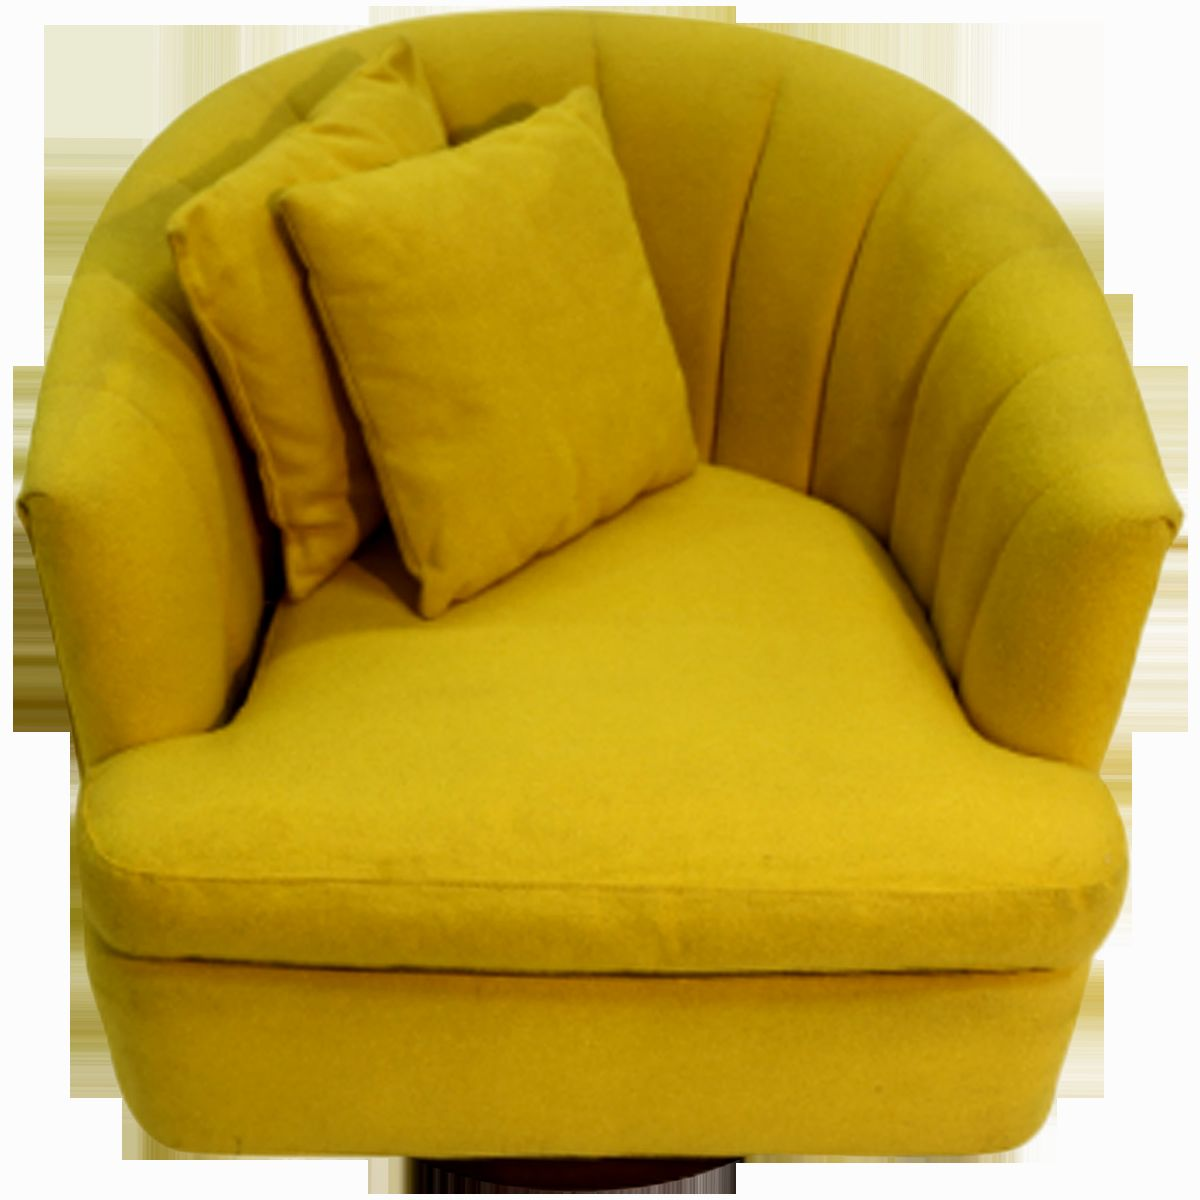 stylish adrian pearsall sofa online-Best Of Adrian Pearsall sofa Wallpaper